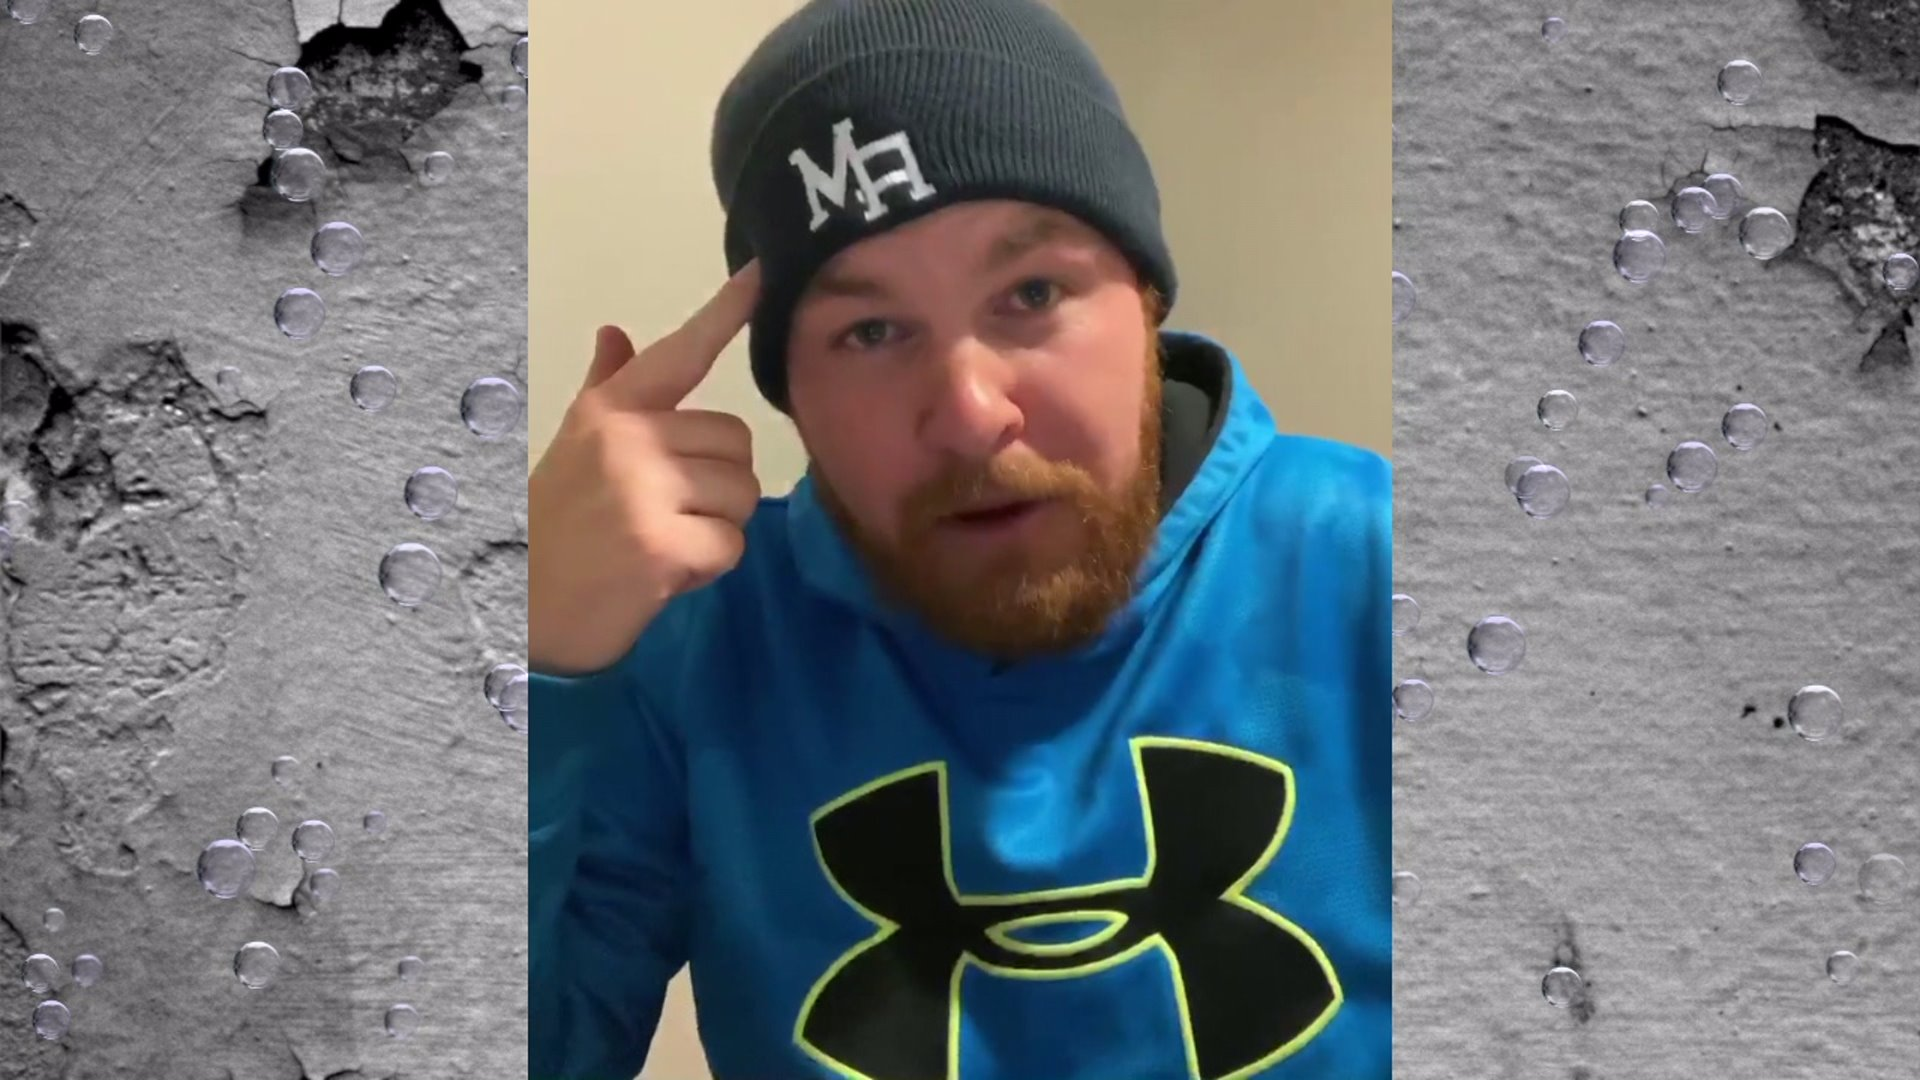 Mount Airy teacher makes rap music video to inspire students amid stay-at-home order.